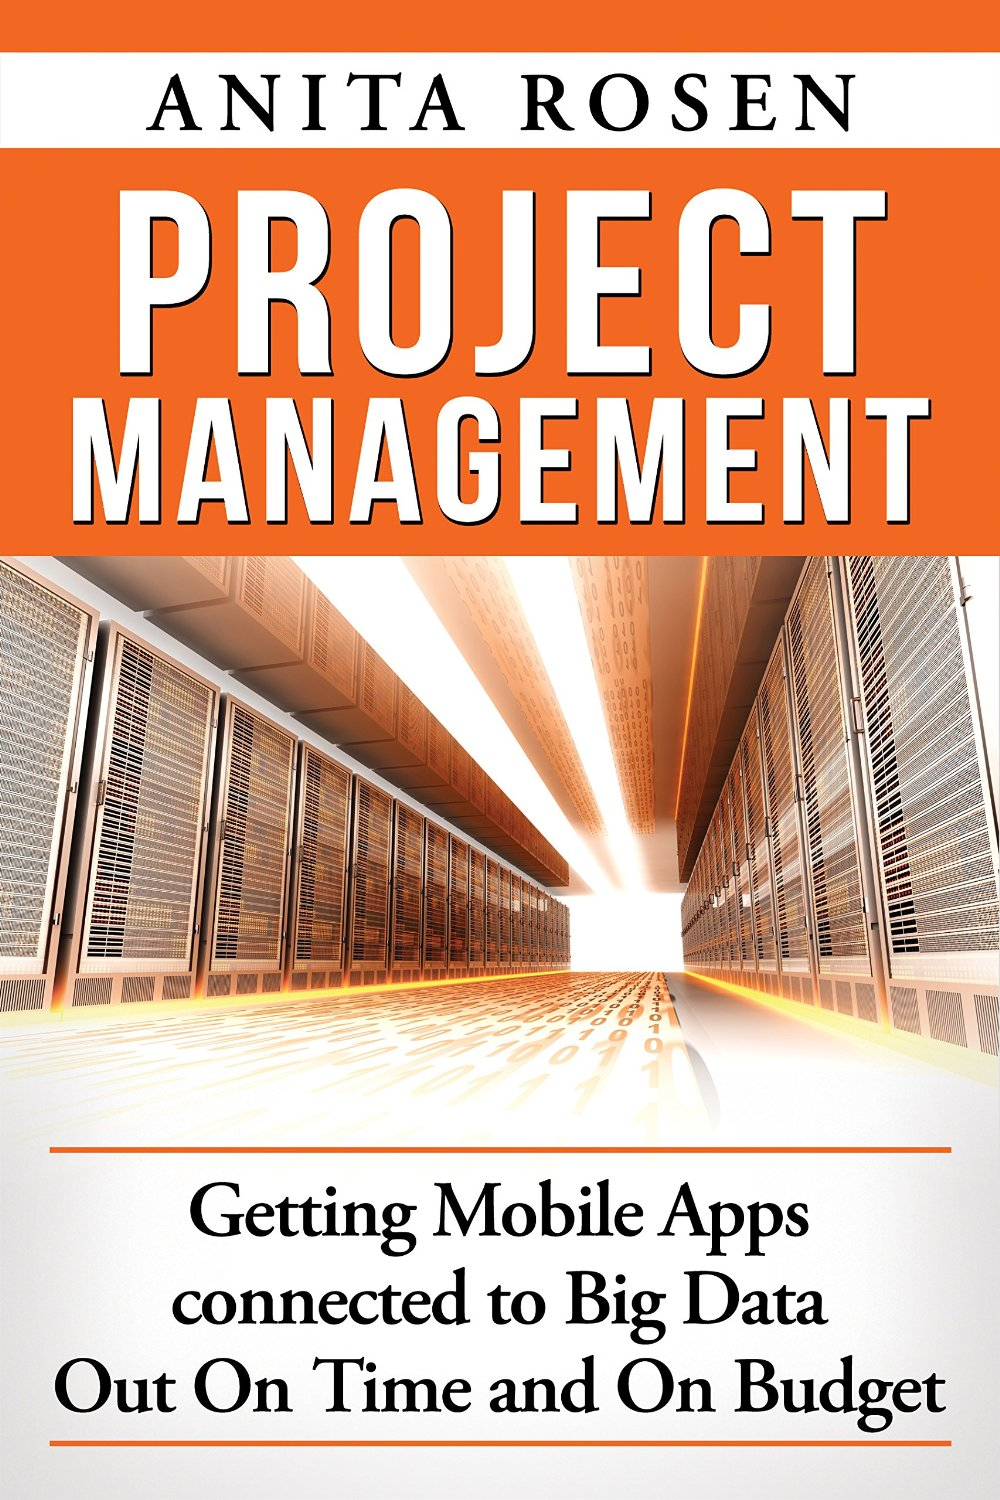 Project-management--getting-mobile-apps-connected-to-big-data-out-on-time-and-on-budgetjpg-original